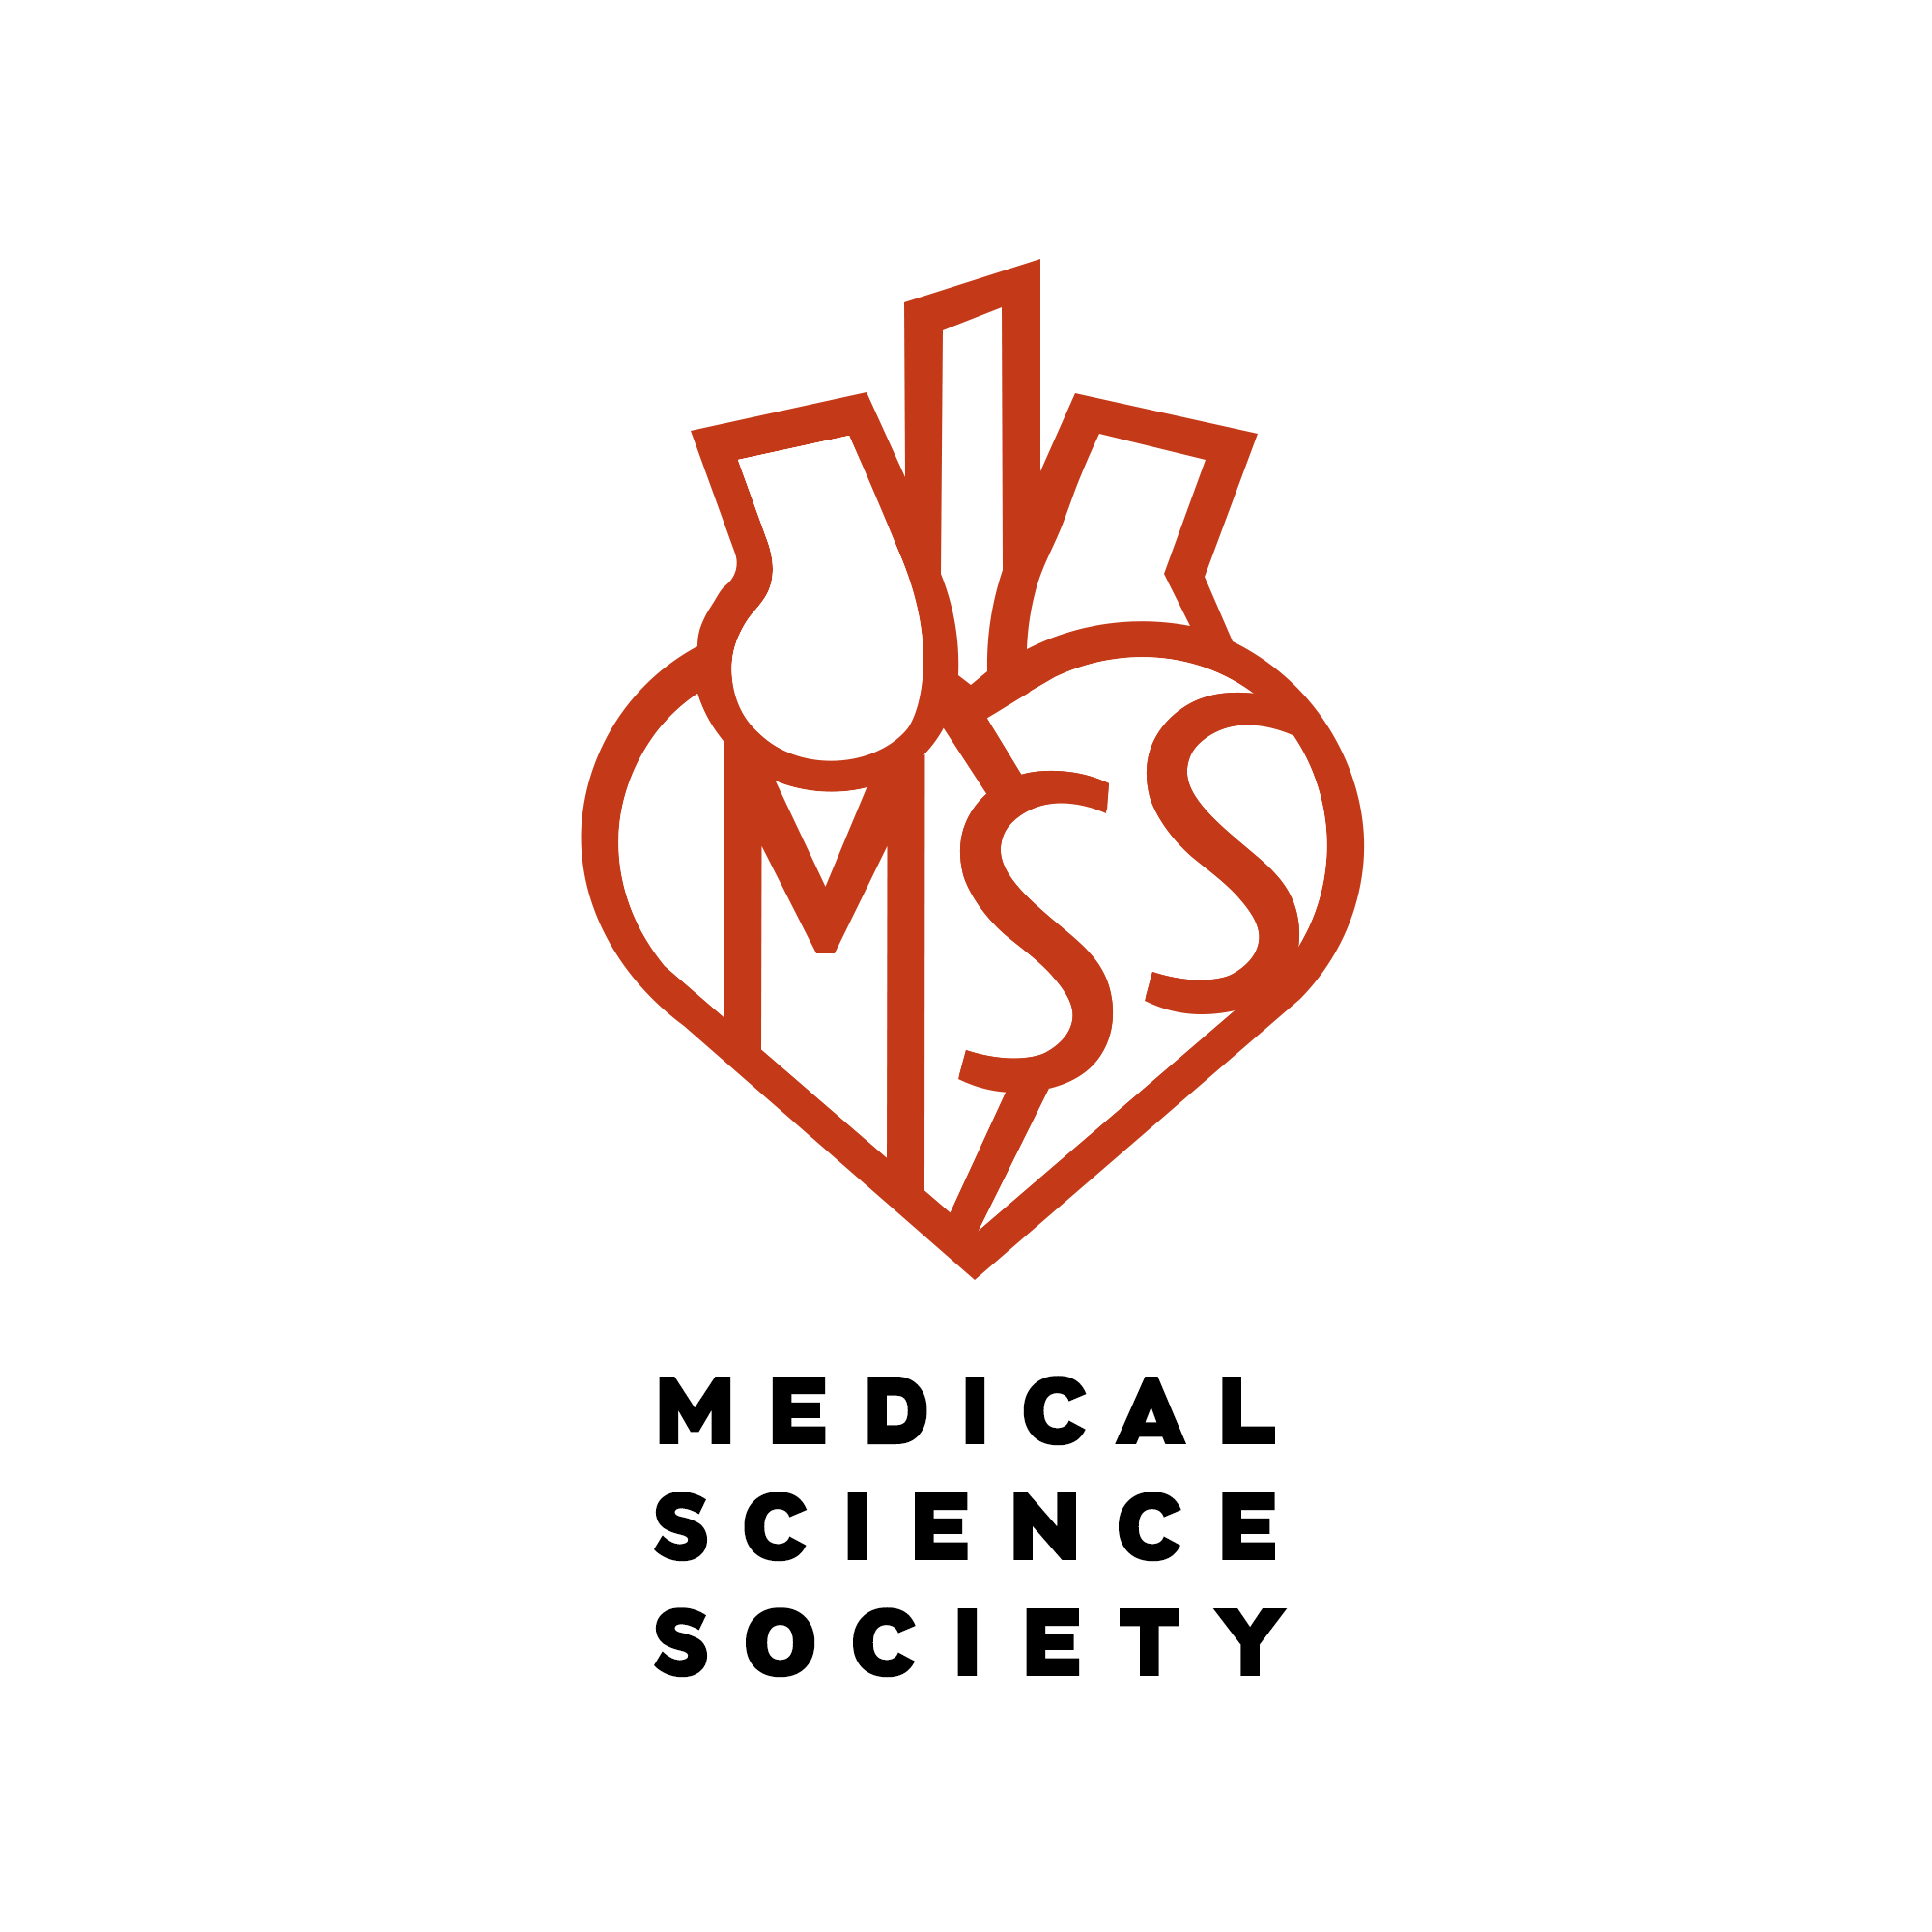 University of New South Wales Medical Science Society (UNSW MedSciSoc) - undefined